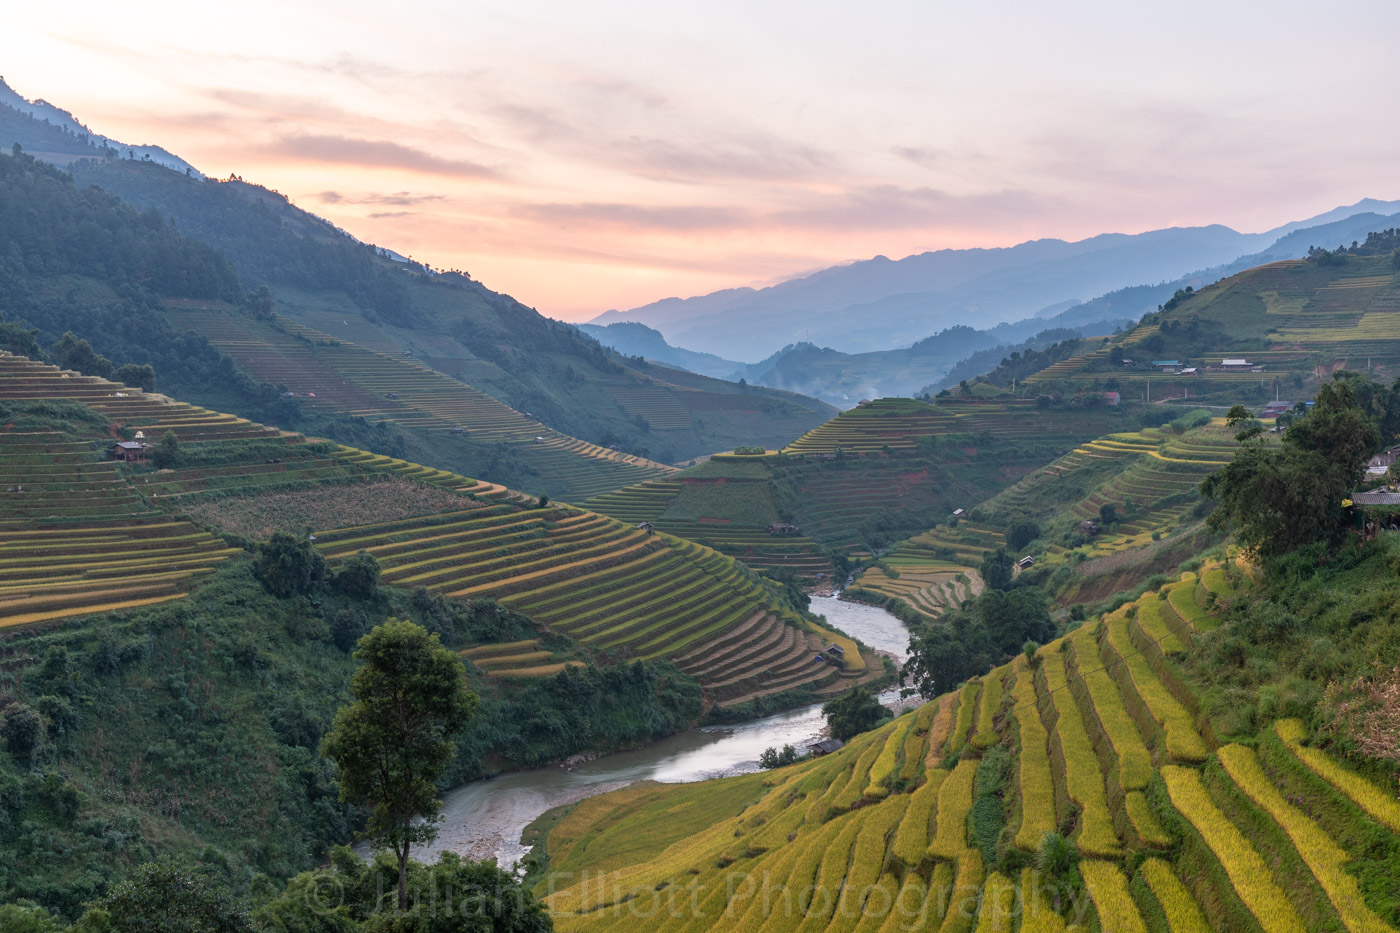 Rice terraces in Mu Cang Chai, Vietnam.